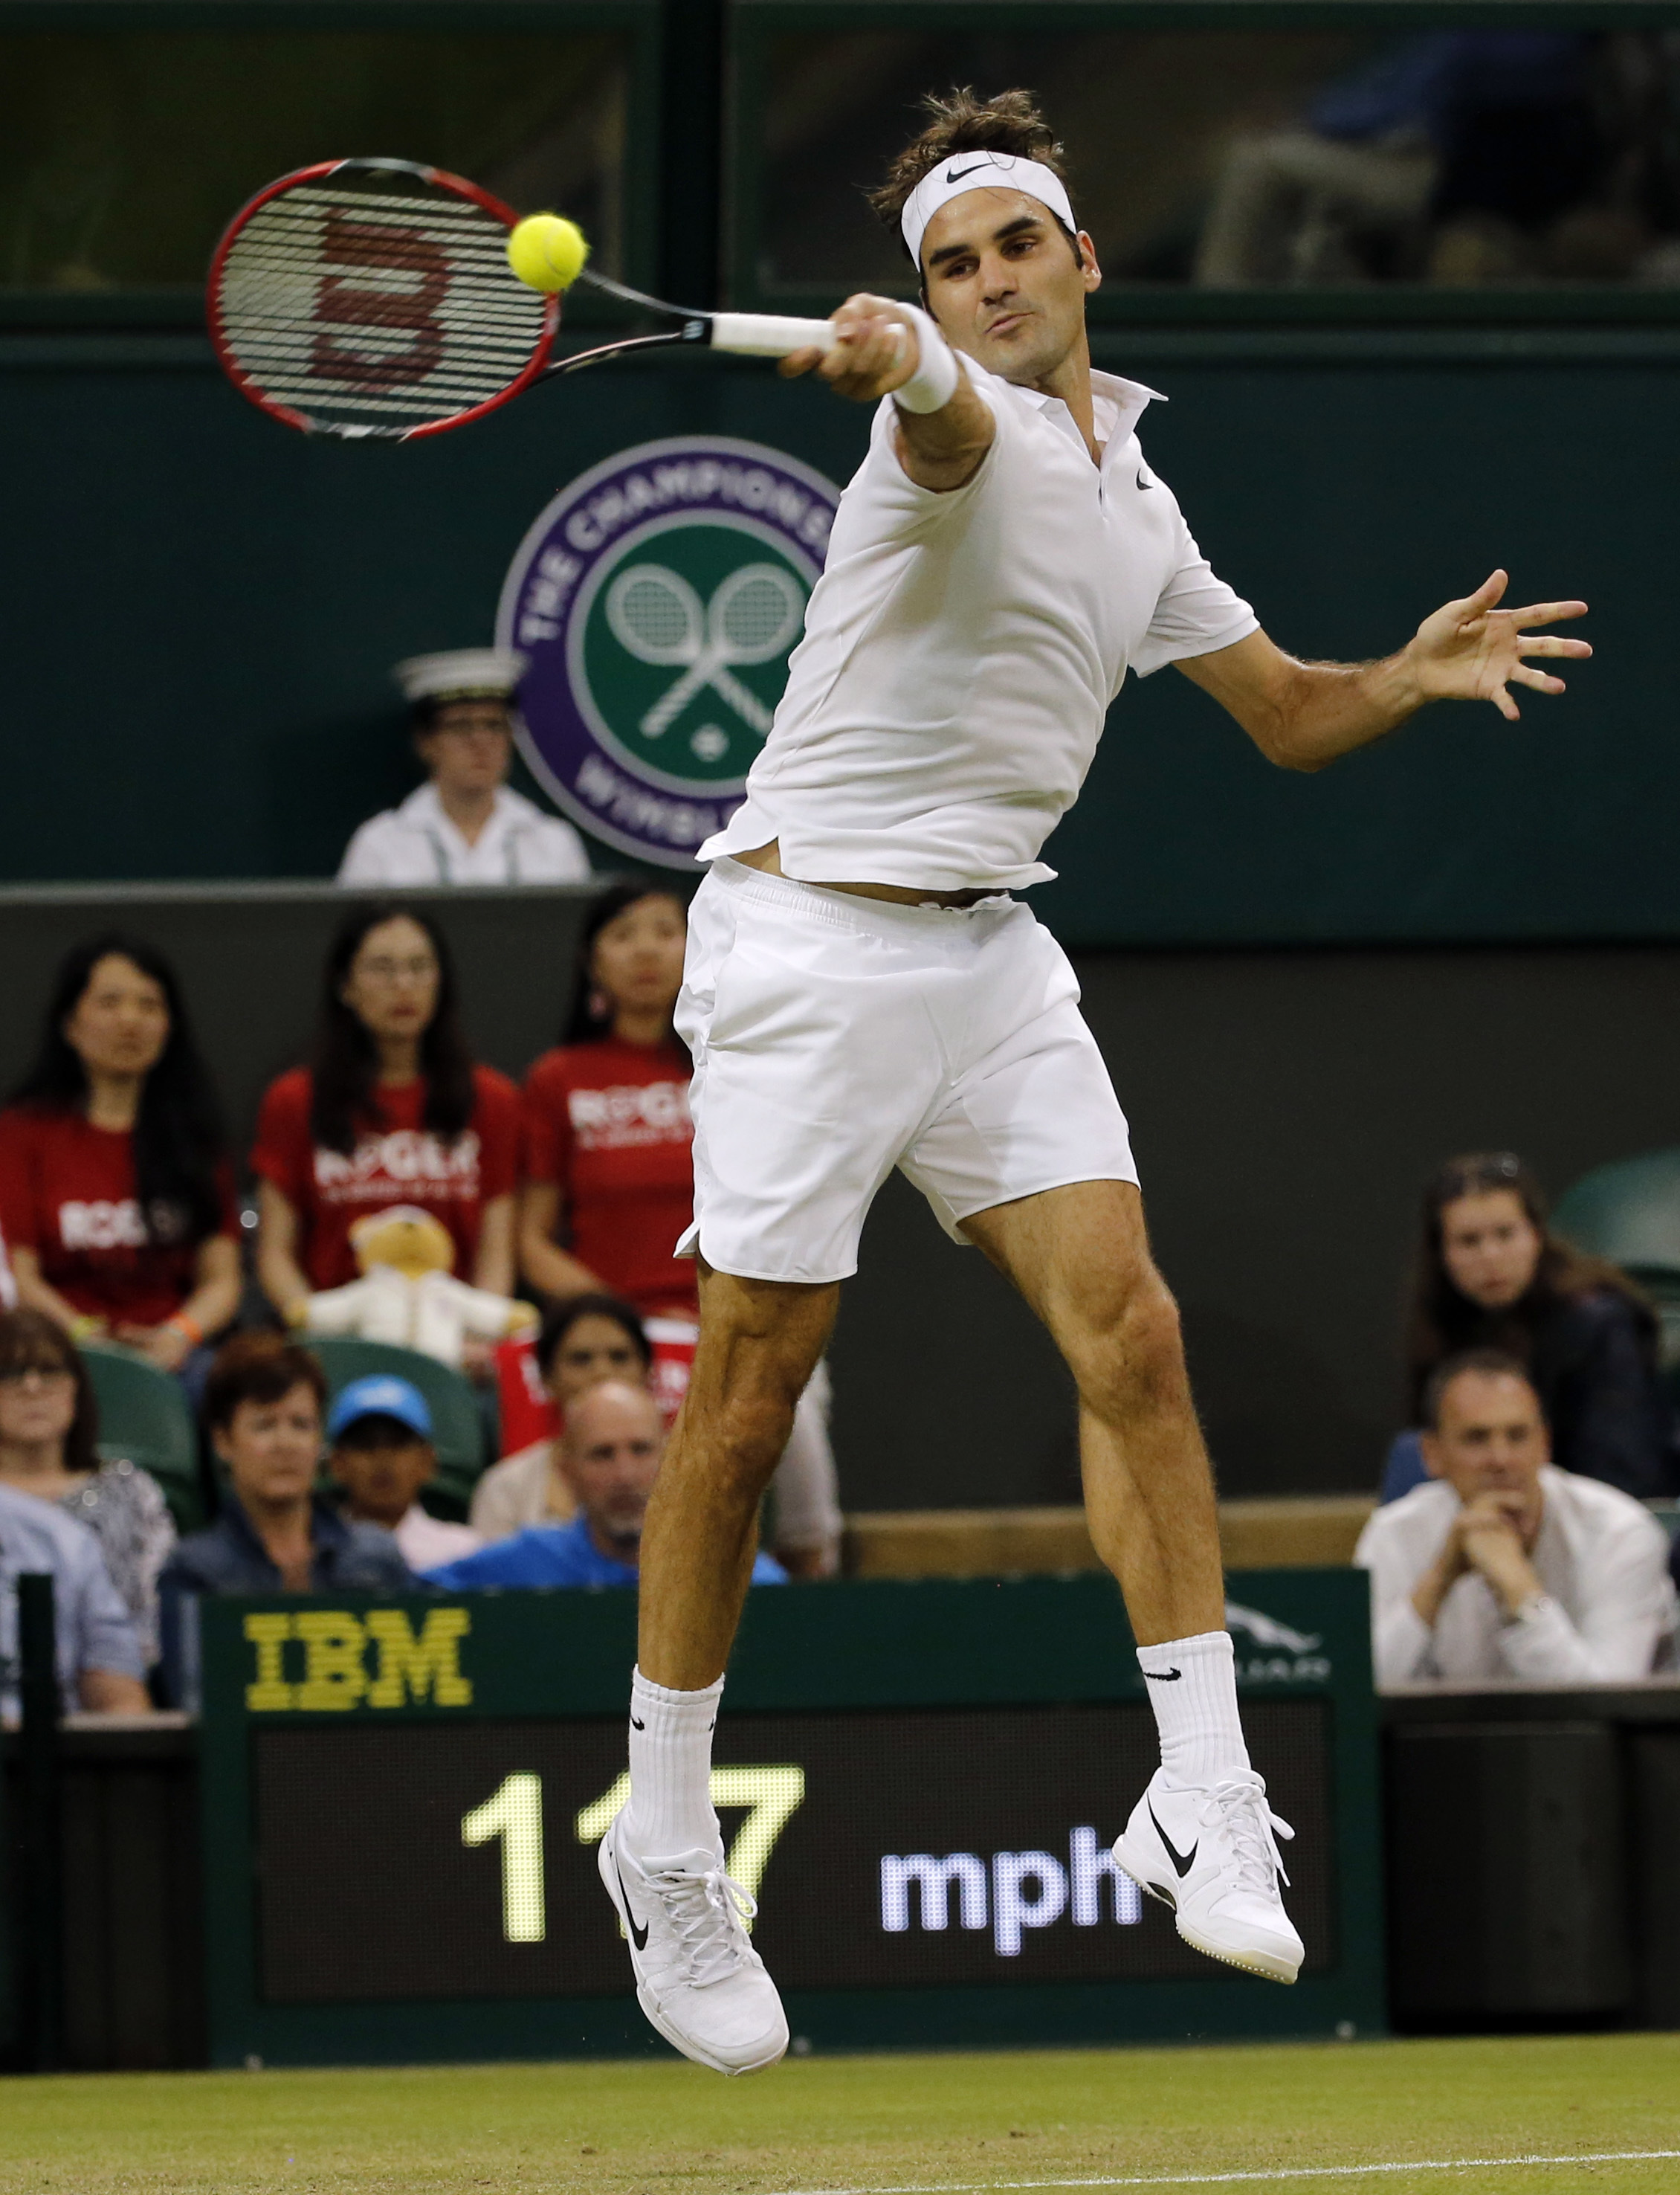 Roger Federer of Switzerland returns to Daniel Evans of Britain during their men's singles match on day five of the Wimbledon Tennis Championships in London, Friday, July 1, 2016. (AP Photo/Ben Curtis)